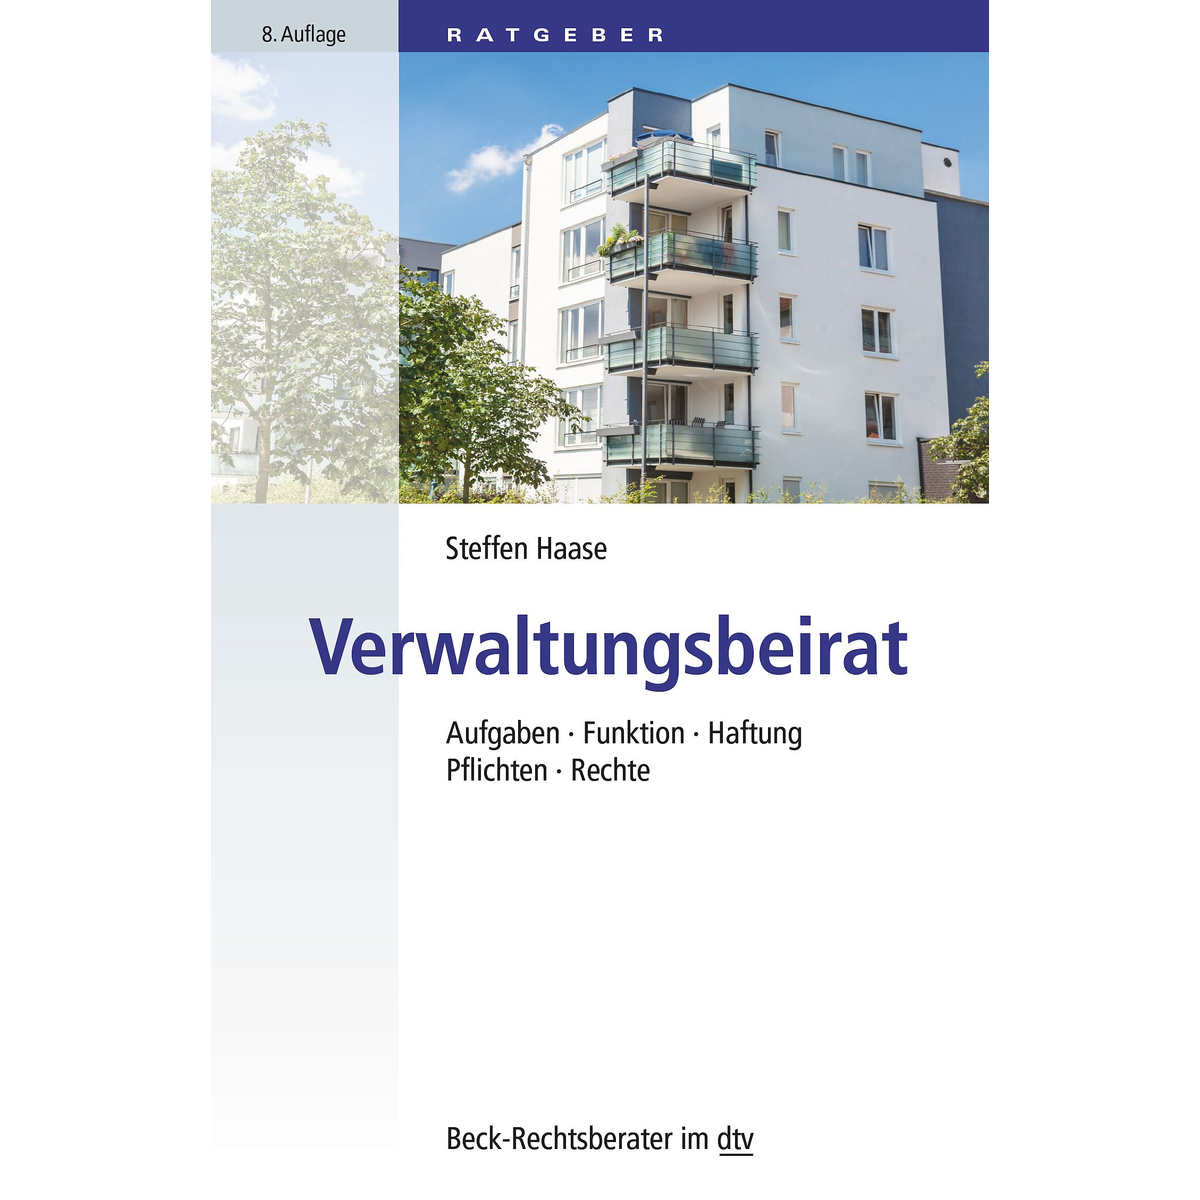 ISBN 9783423512121 book Reference & languages German Paperback 250 pages